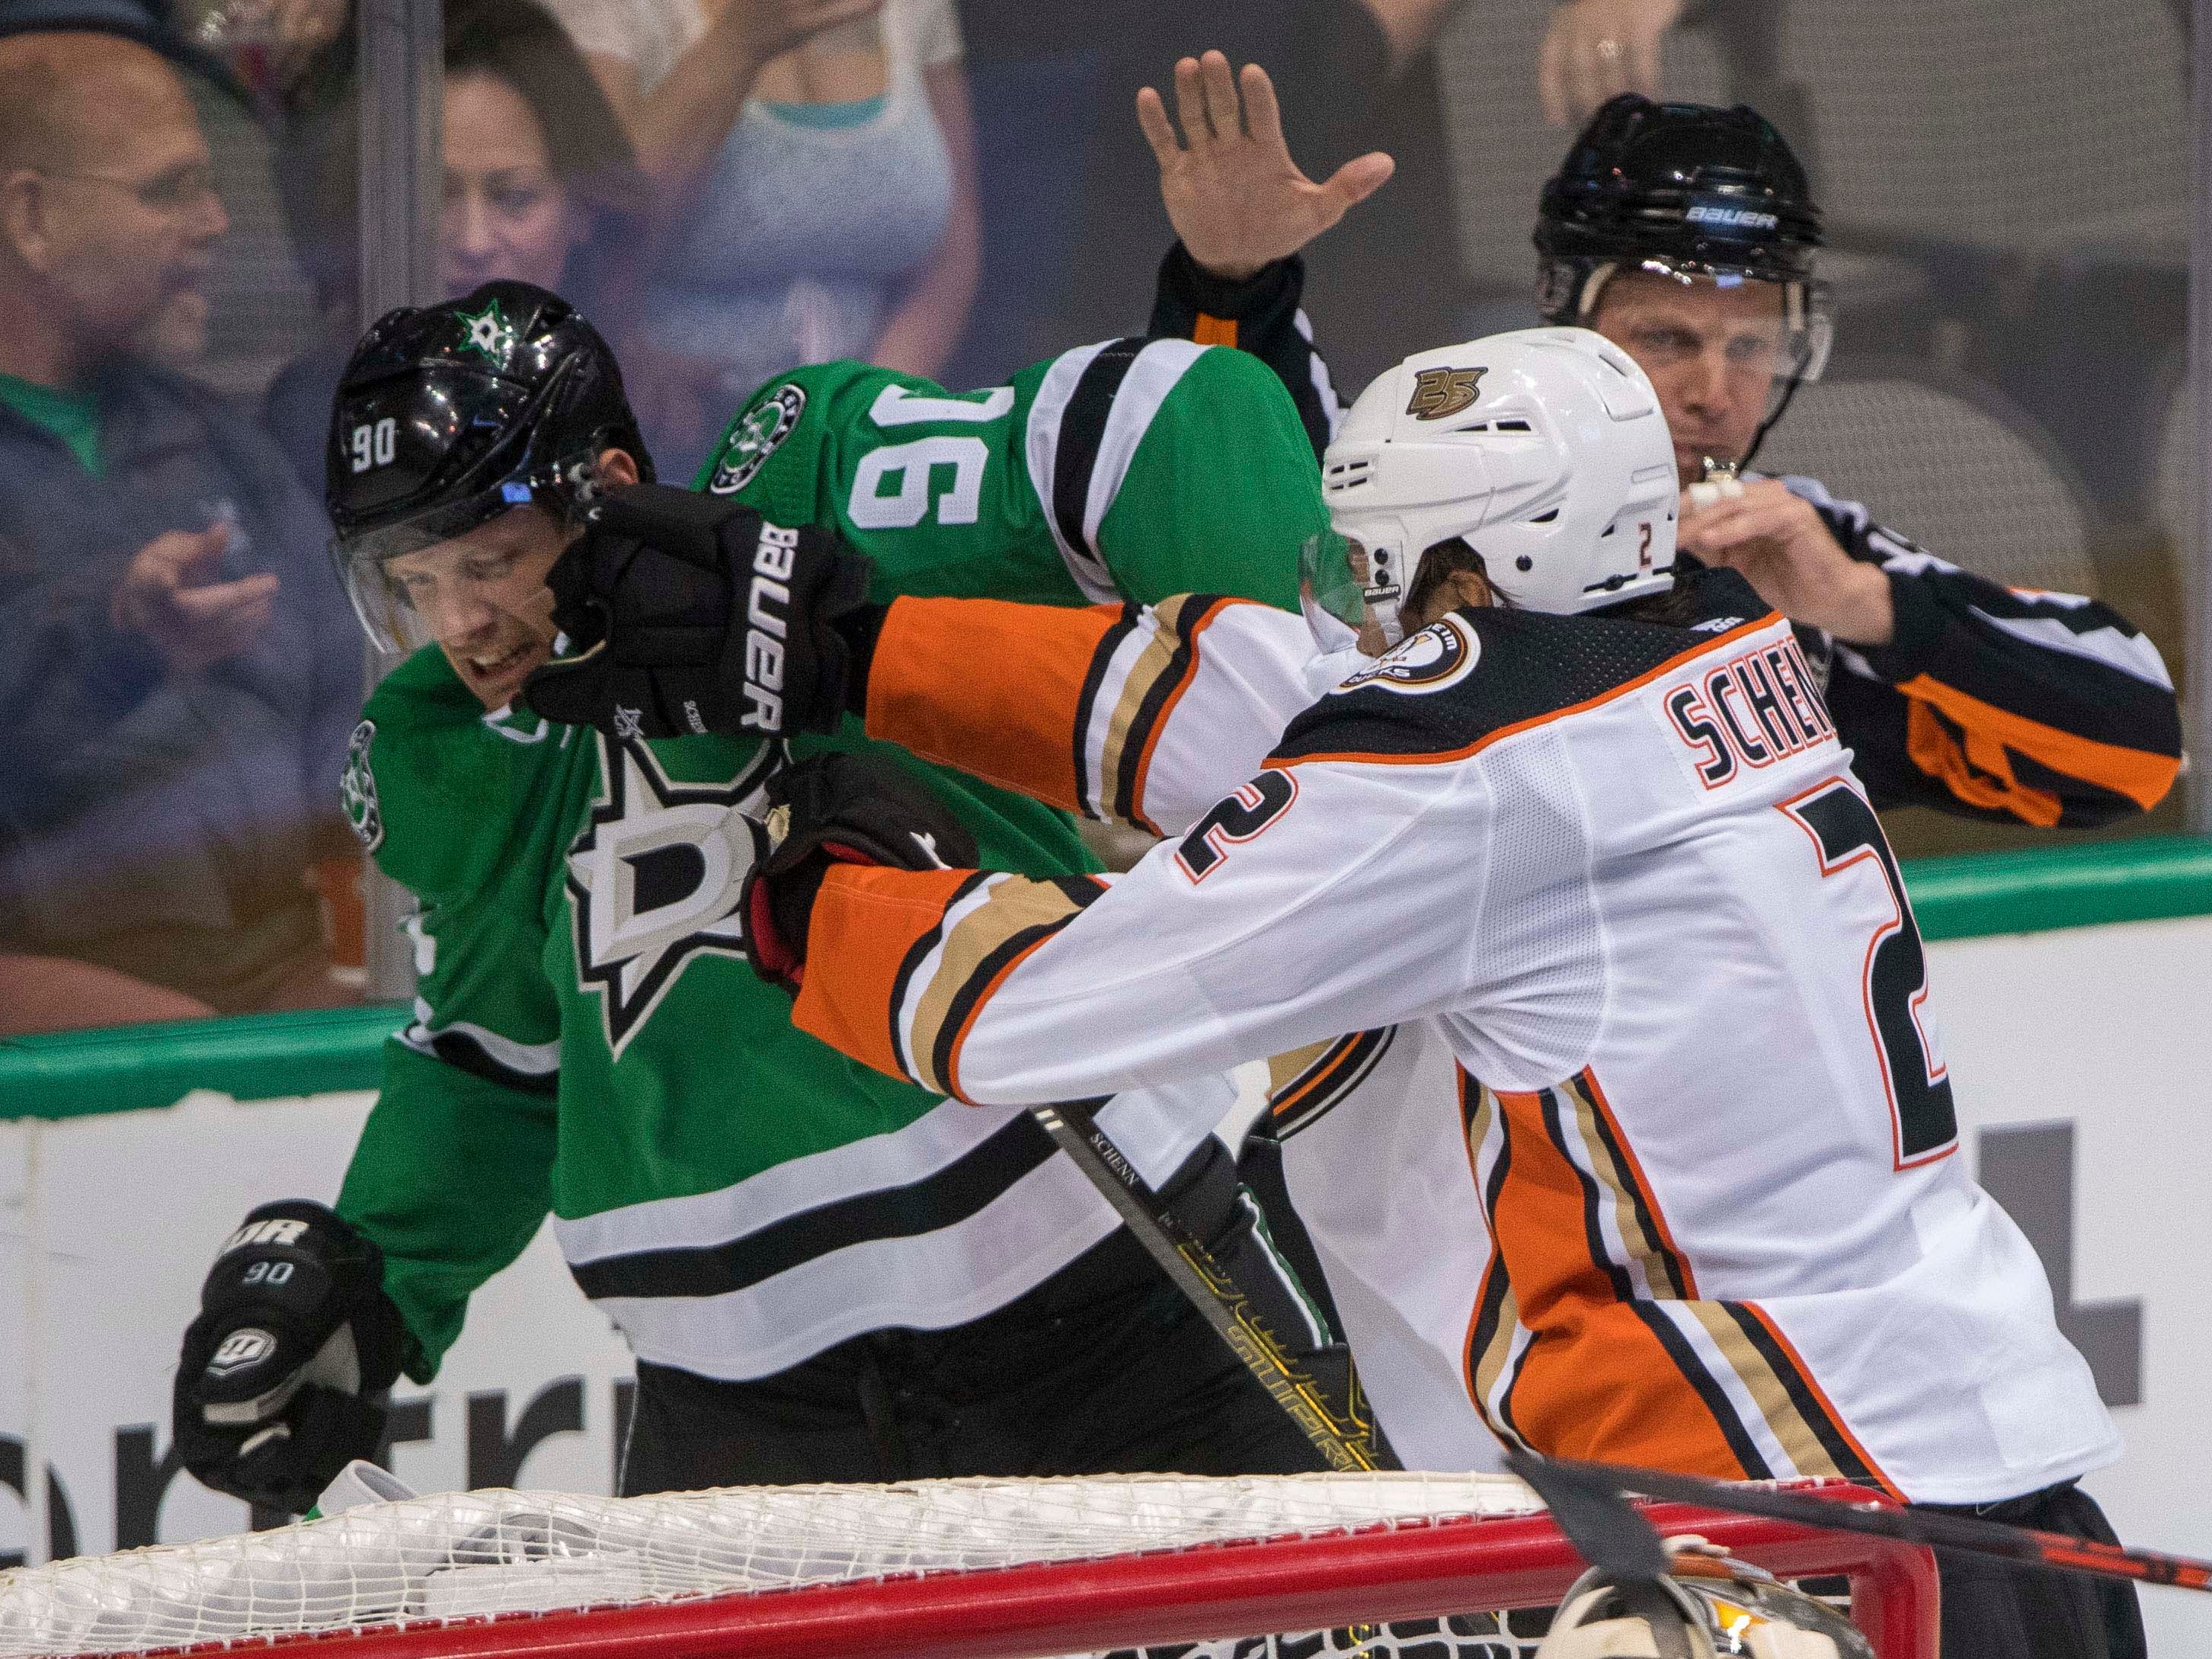 Oct 13: Ducks defenseman Luke Schenn (2) fights with Stars center Jason Spezza (90)